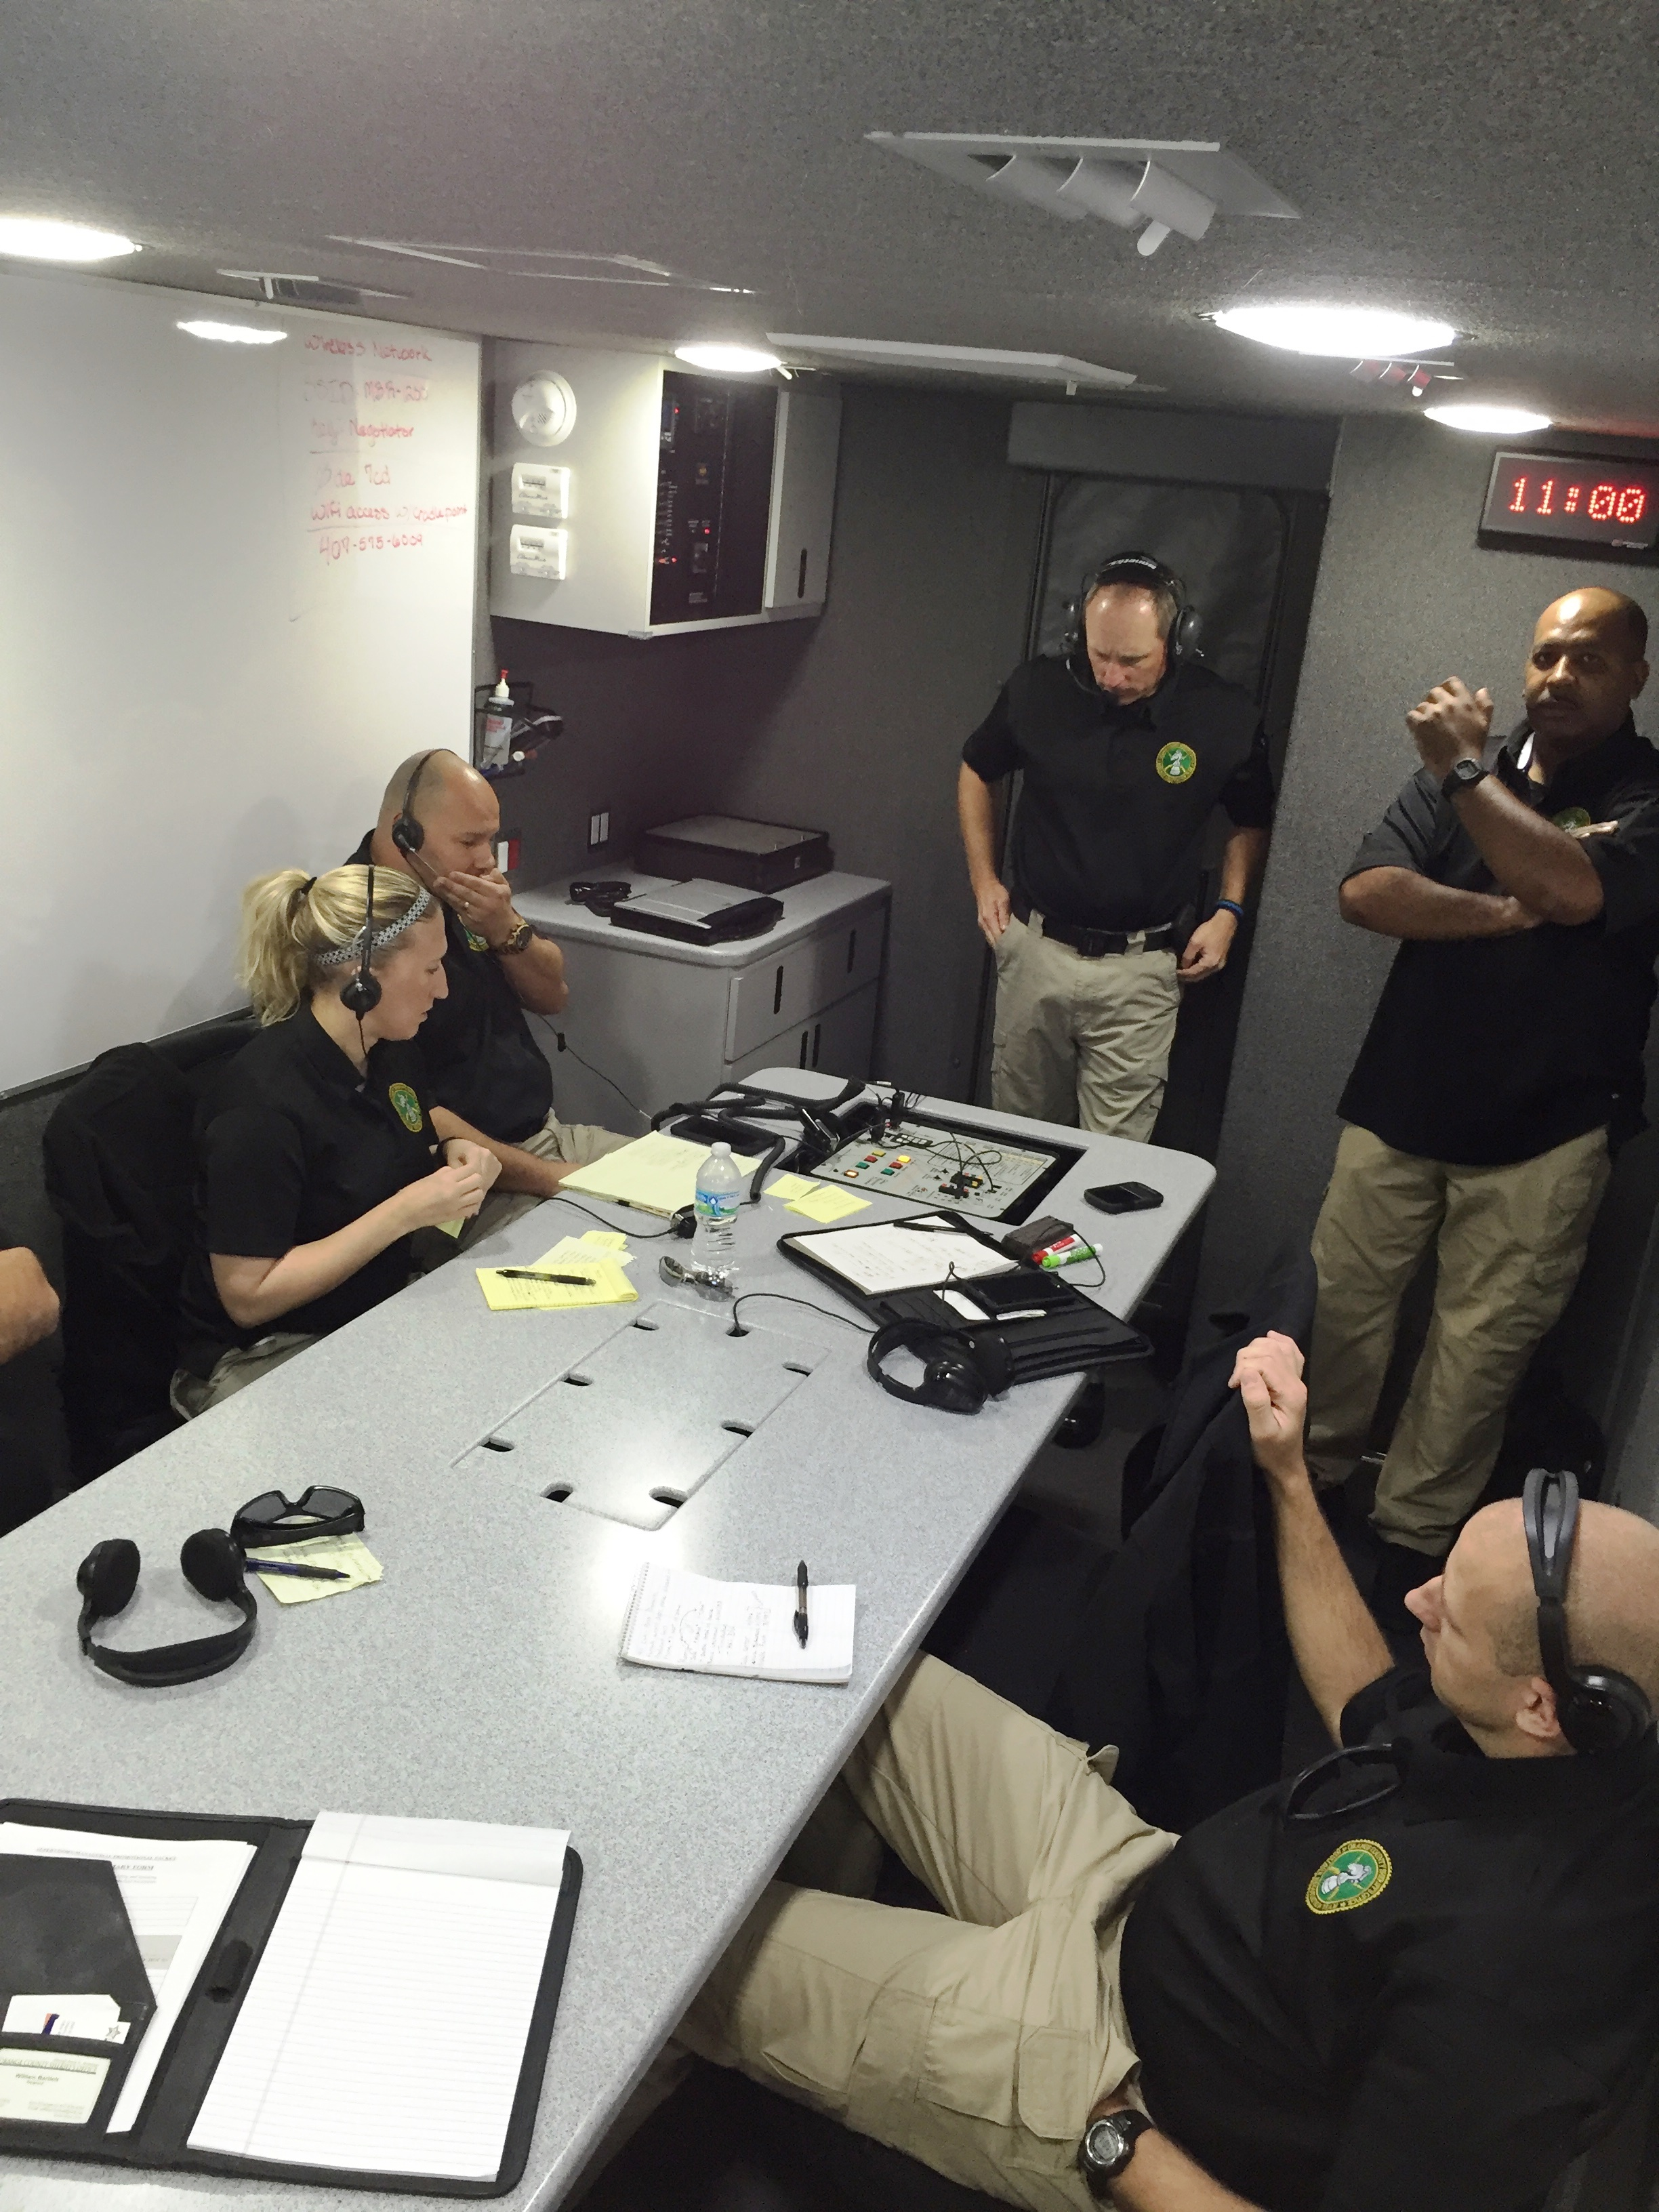 Hostage negotiation team in command center responding to crisis